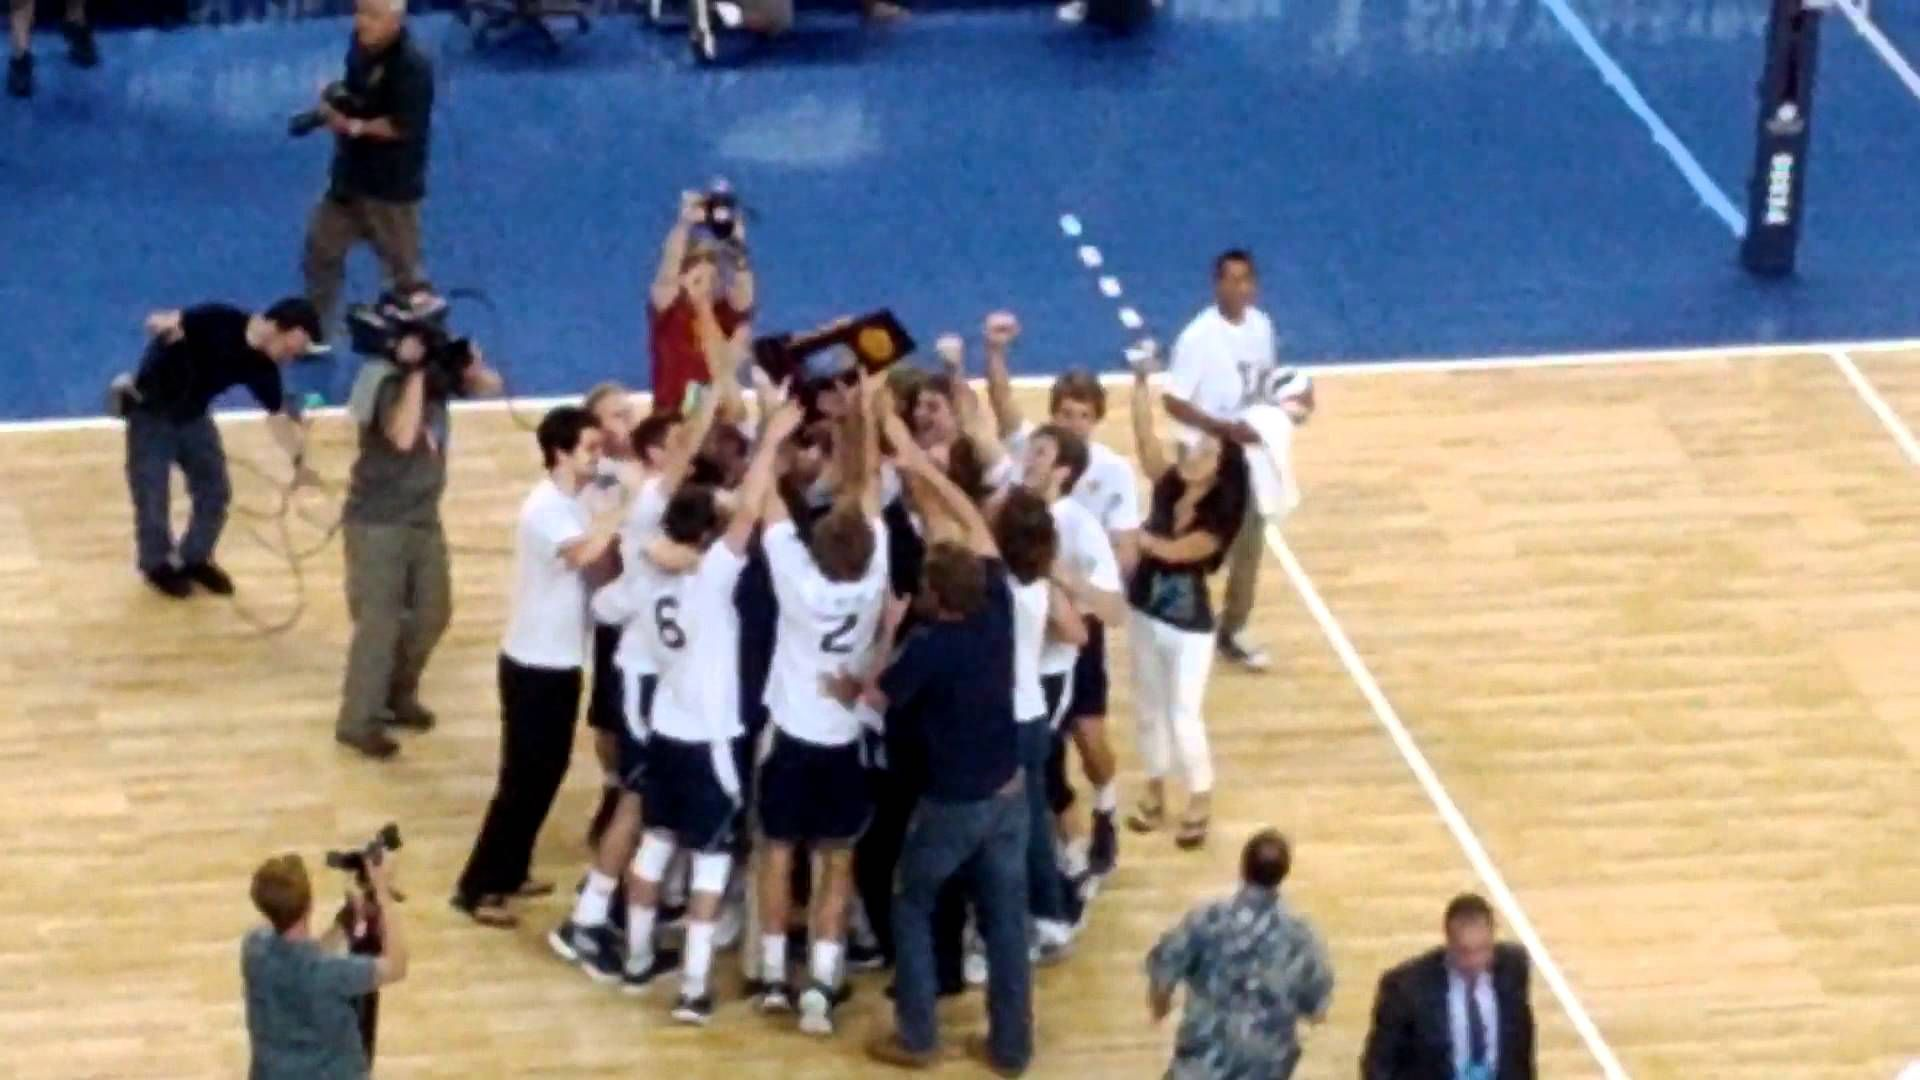 Uci Men S Volleyball Wins The 2011 12 Ncaa Title By Sweeping Usc To Win 3rd Title In 6 Years Championship Point Mens Volleyball Volleyball Usc